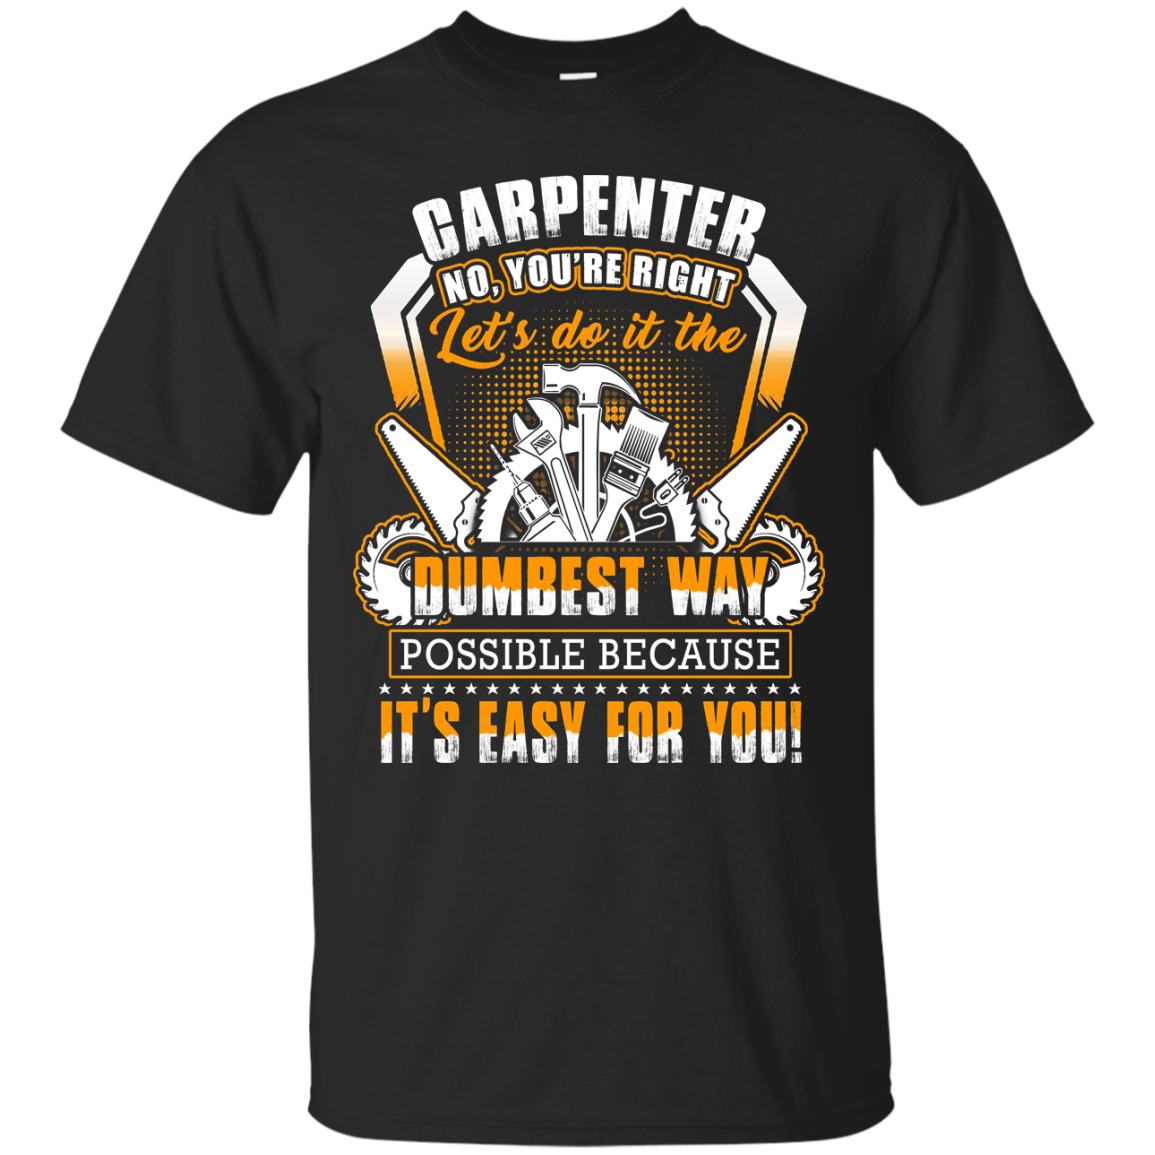 Carpenter No You re Right Let s Do It The Dumbest Way T Shirts